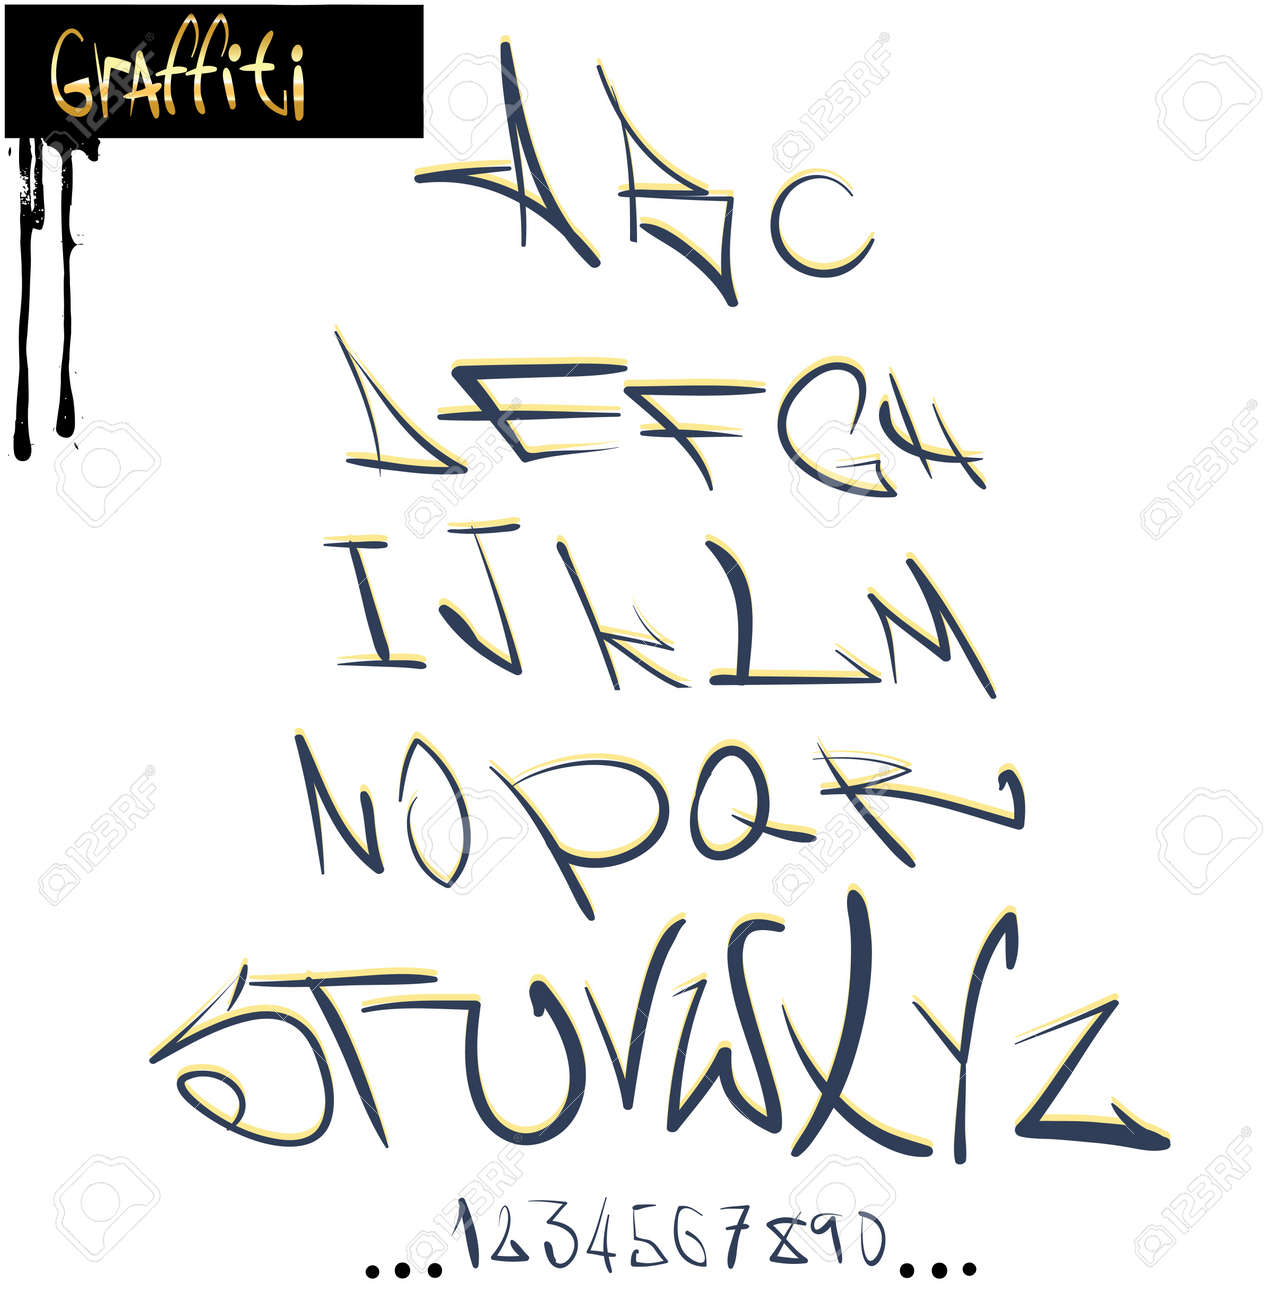 Graffiti Font Alphabet Abc Letters Stock Vector